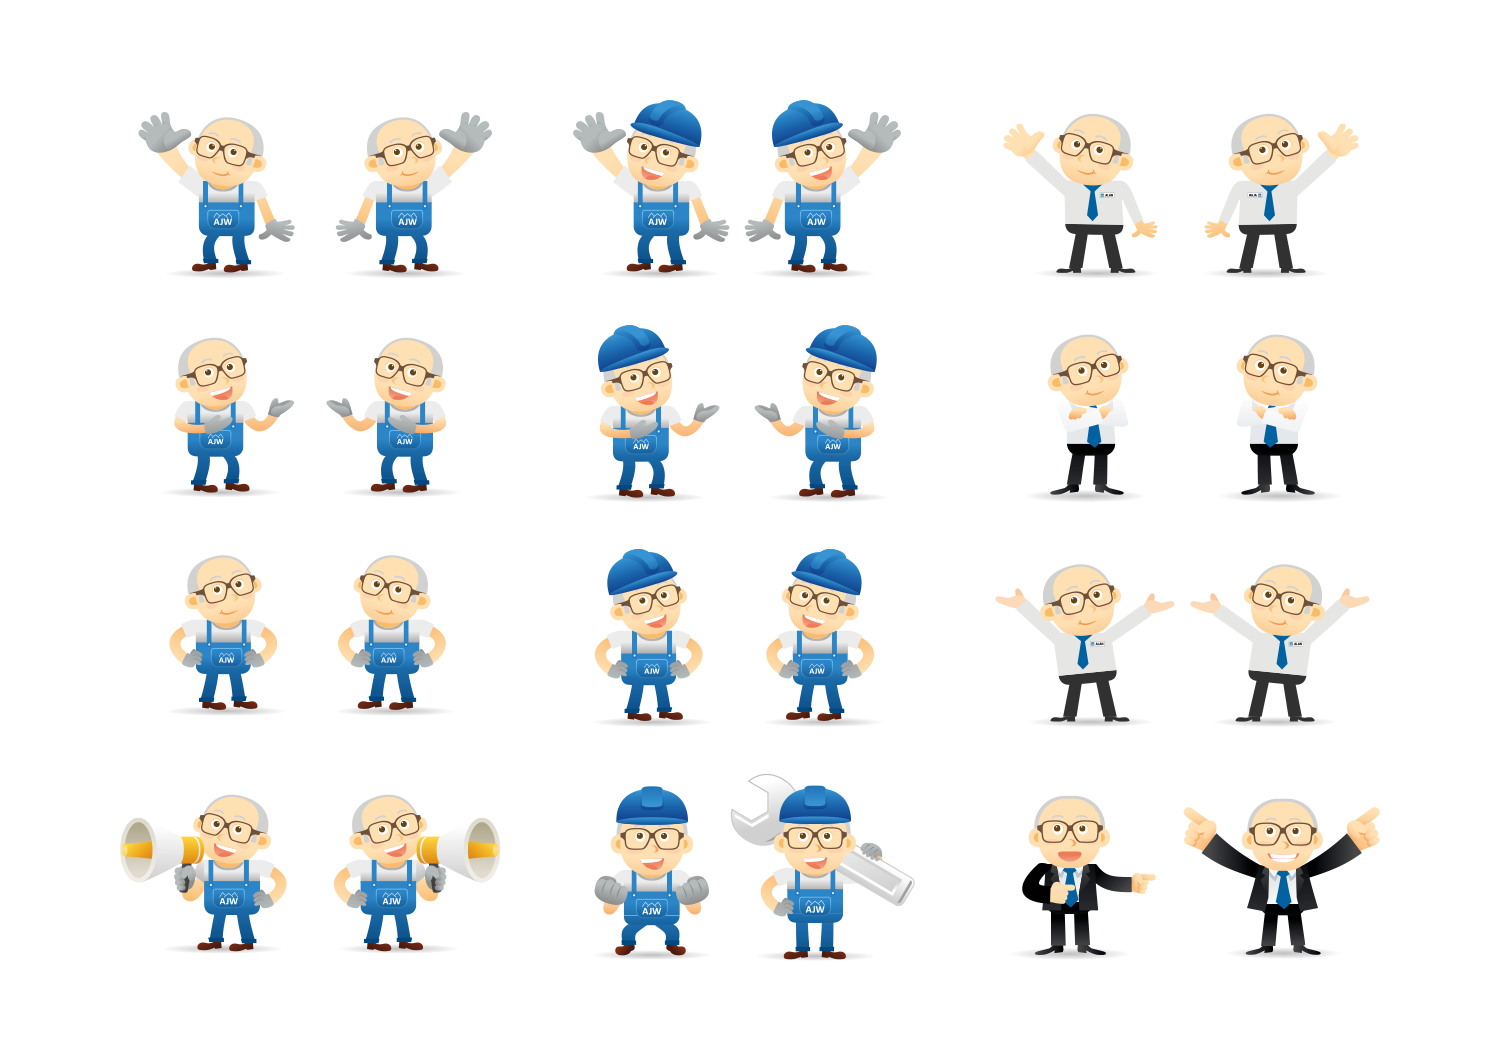 Mini Alan company mascot charcter design for AJW by 30two